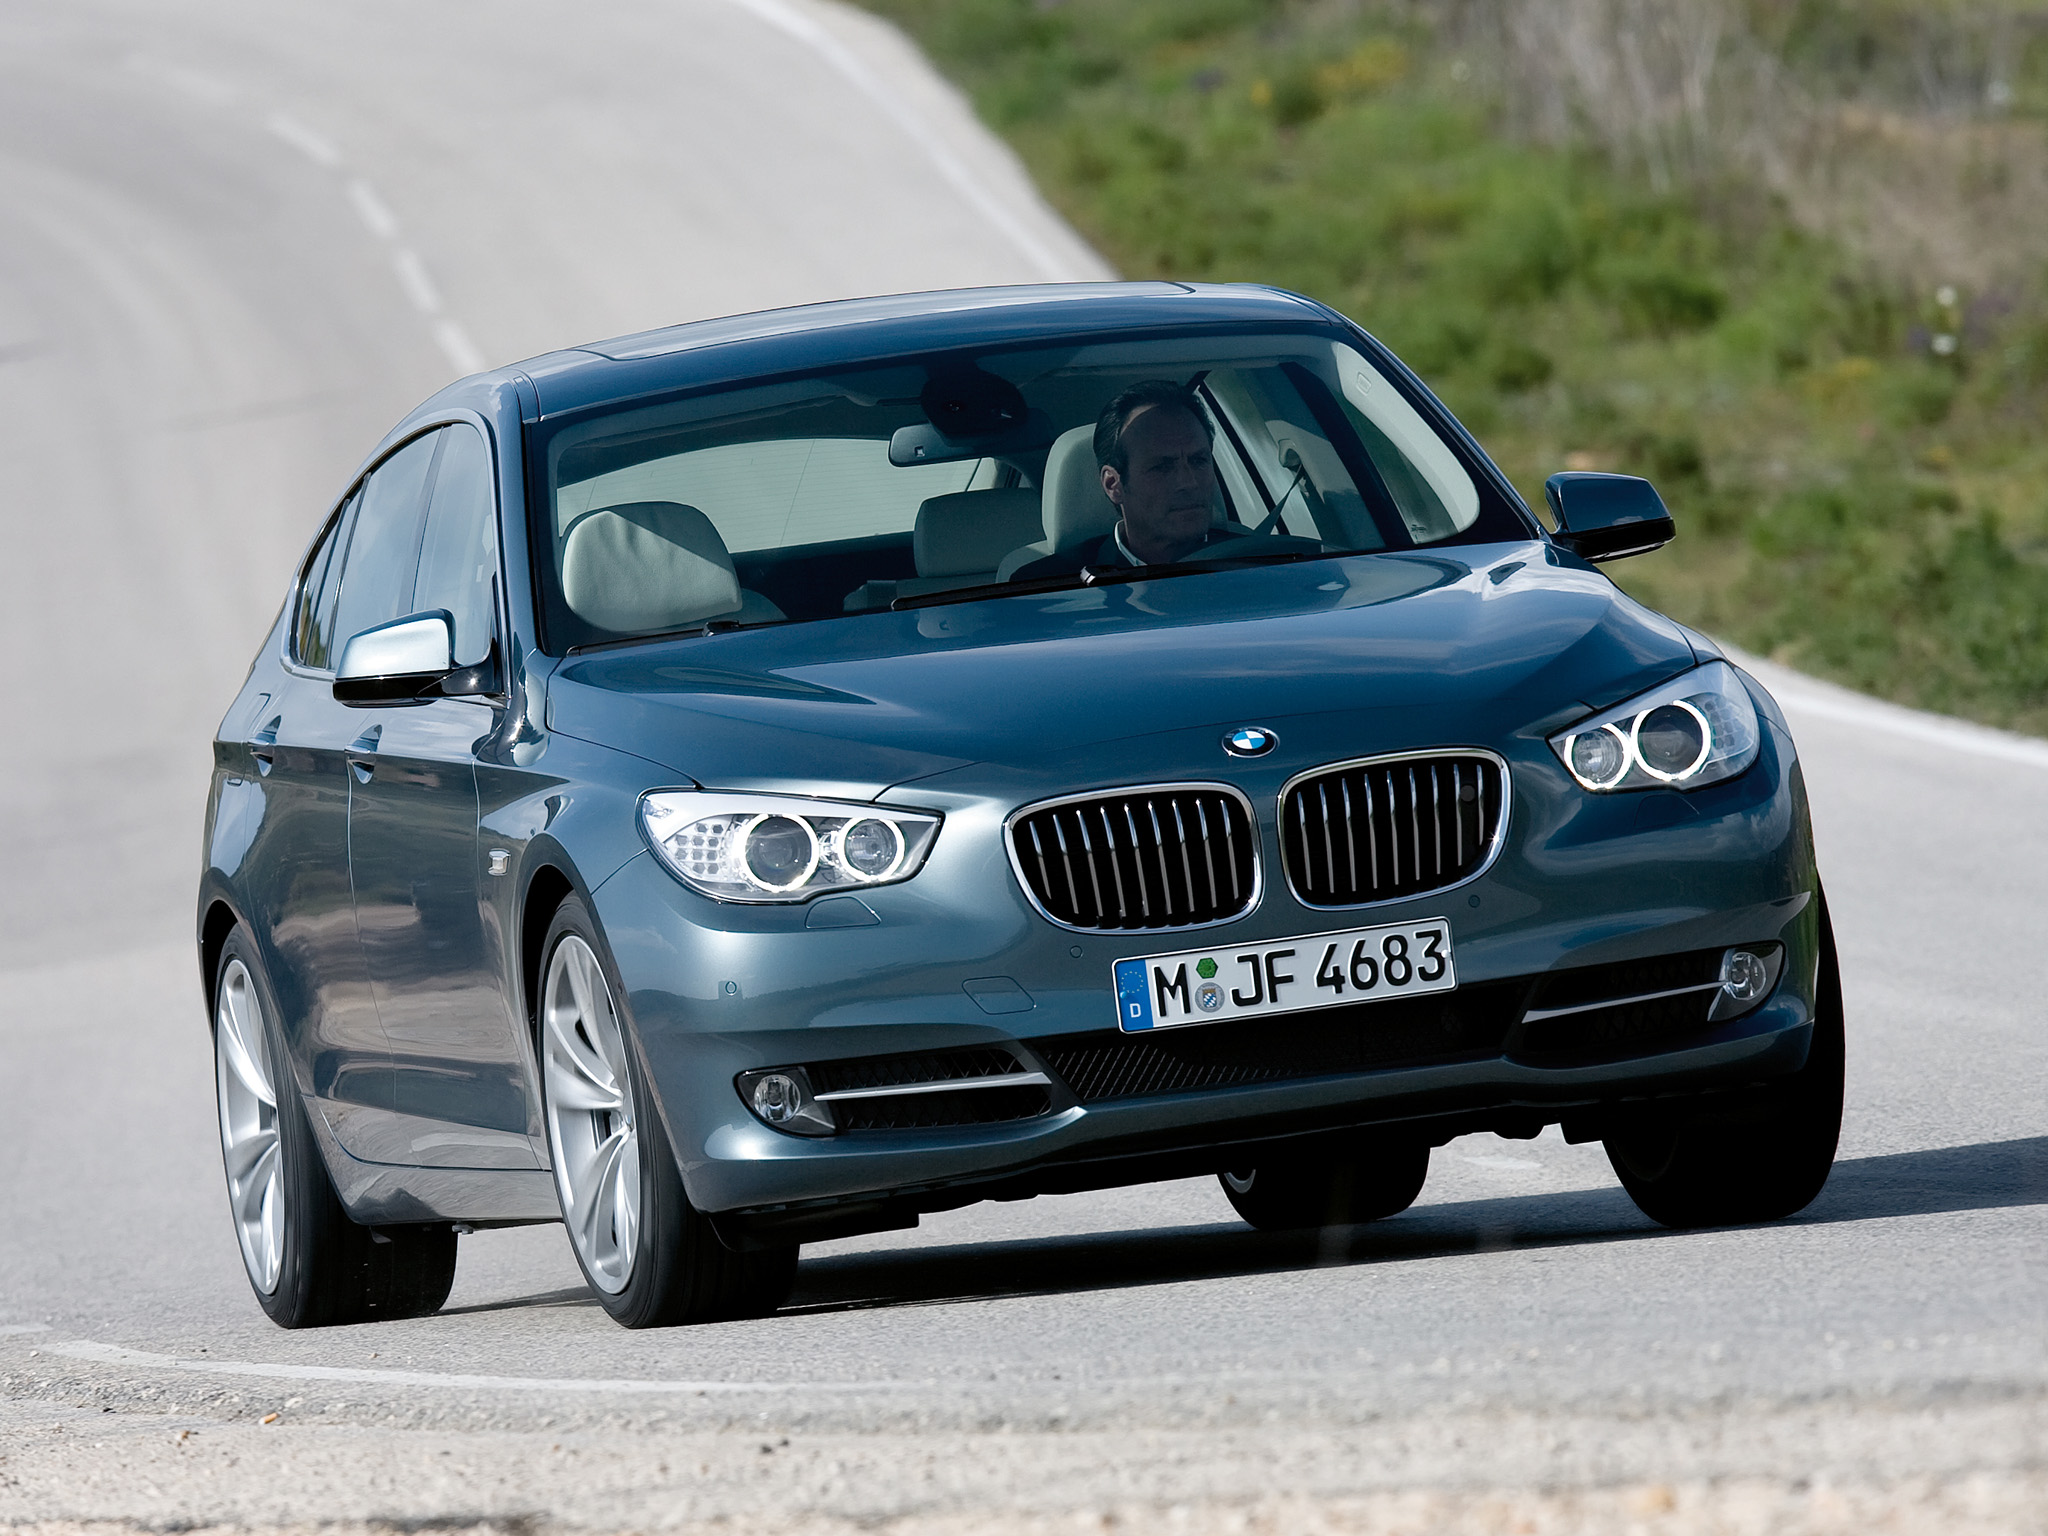 bmw 5er gran turismo f07 535d 300 hp steptronic. Black Bedroom Furniture Sets. Home Design Ideas